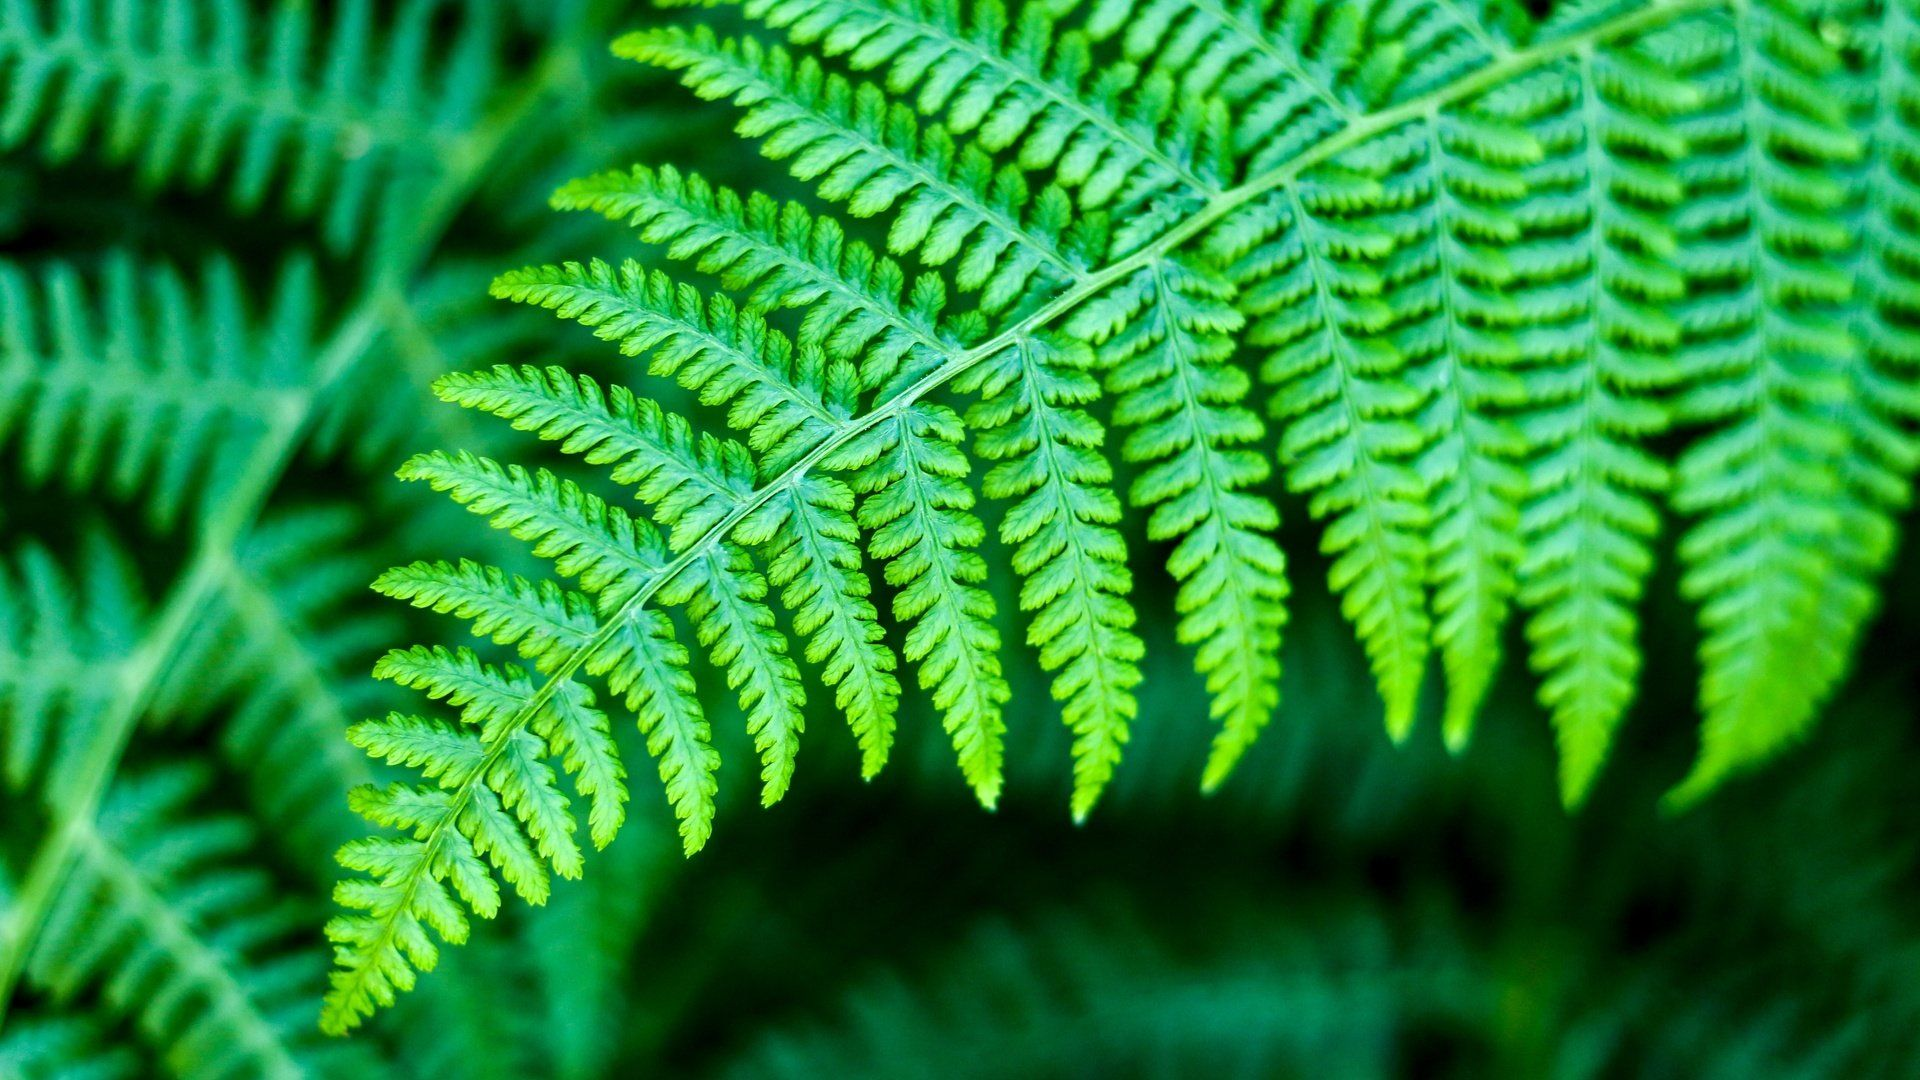 Fern wallpaper download